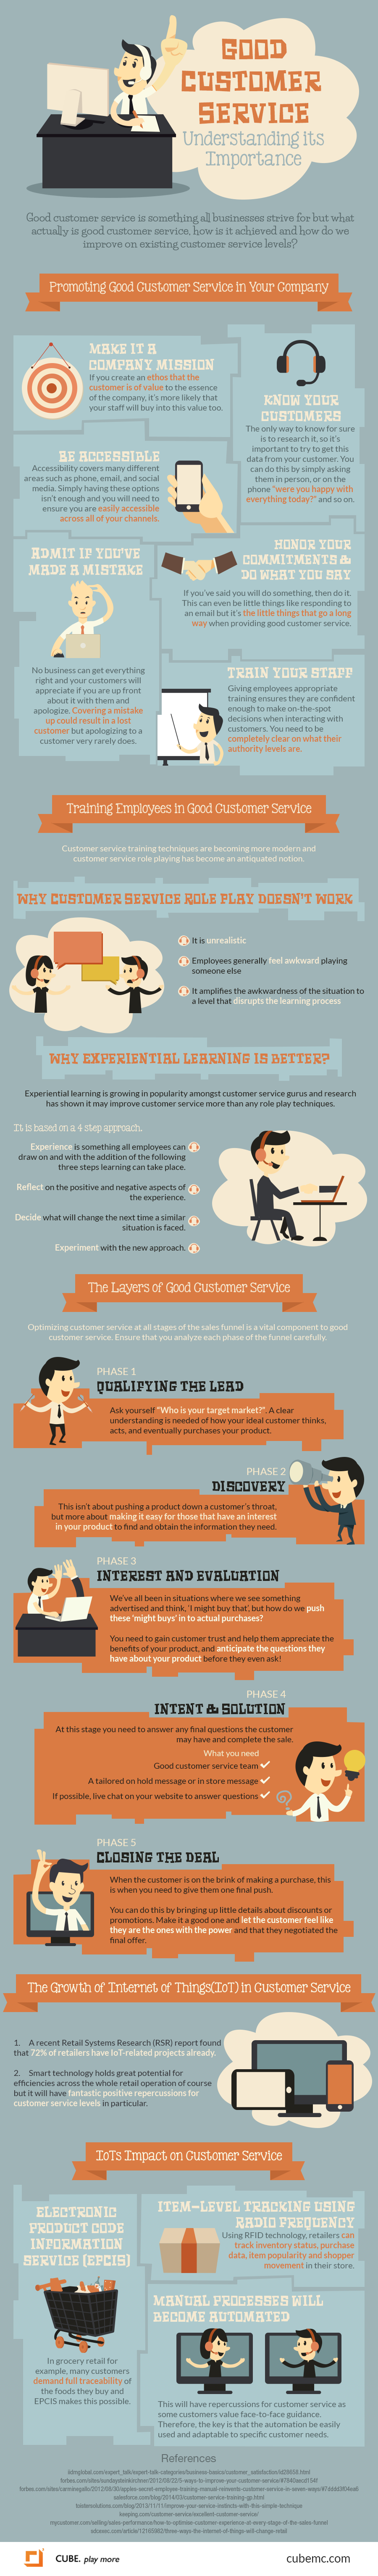 1-Good Customer Service - Understanding its Importance